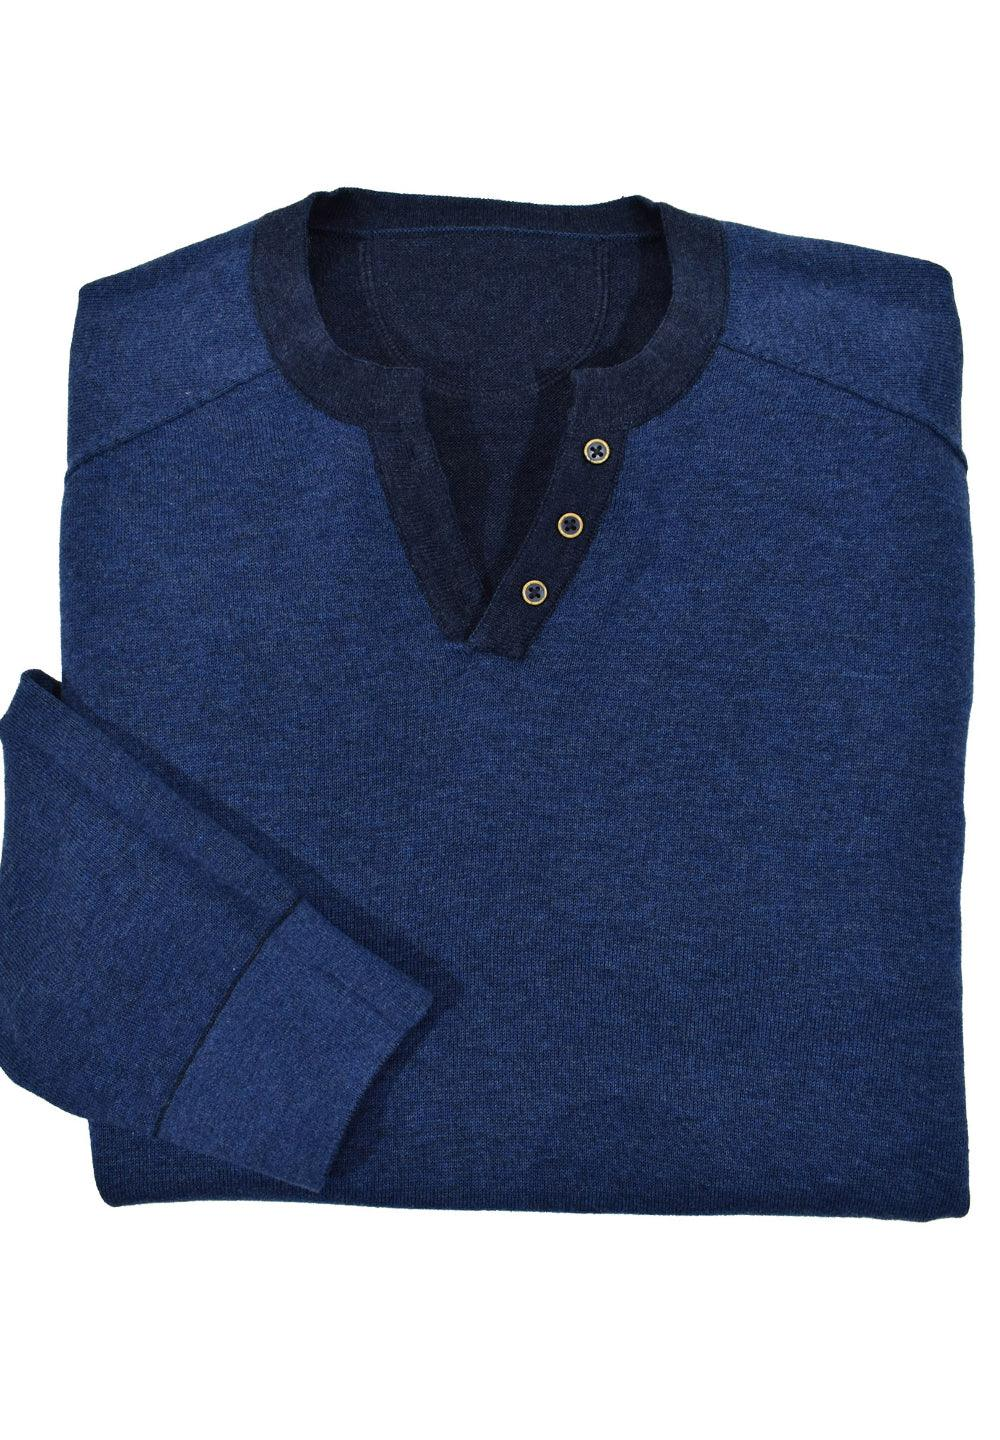 "Available in Berry or Midnight, these Raffi, cotton reversible trend v necks are great to make an updated, yet casual fashion statement. Soft and comfortable, they are light weight with a contemporary fit. Imported.  Raffi Reversible V Sport  Soft and comfortable cotton blended yarns. Light weight can be worn alone or for layering. Trend ""venly"" model blends a contemporary henly neck with a v neck. Modern fit. Reversible to give two looks for one item."